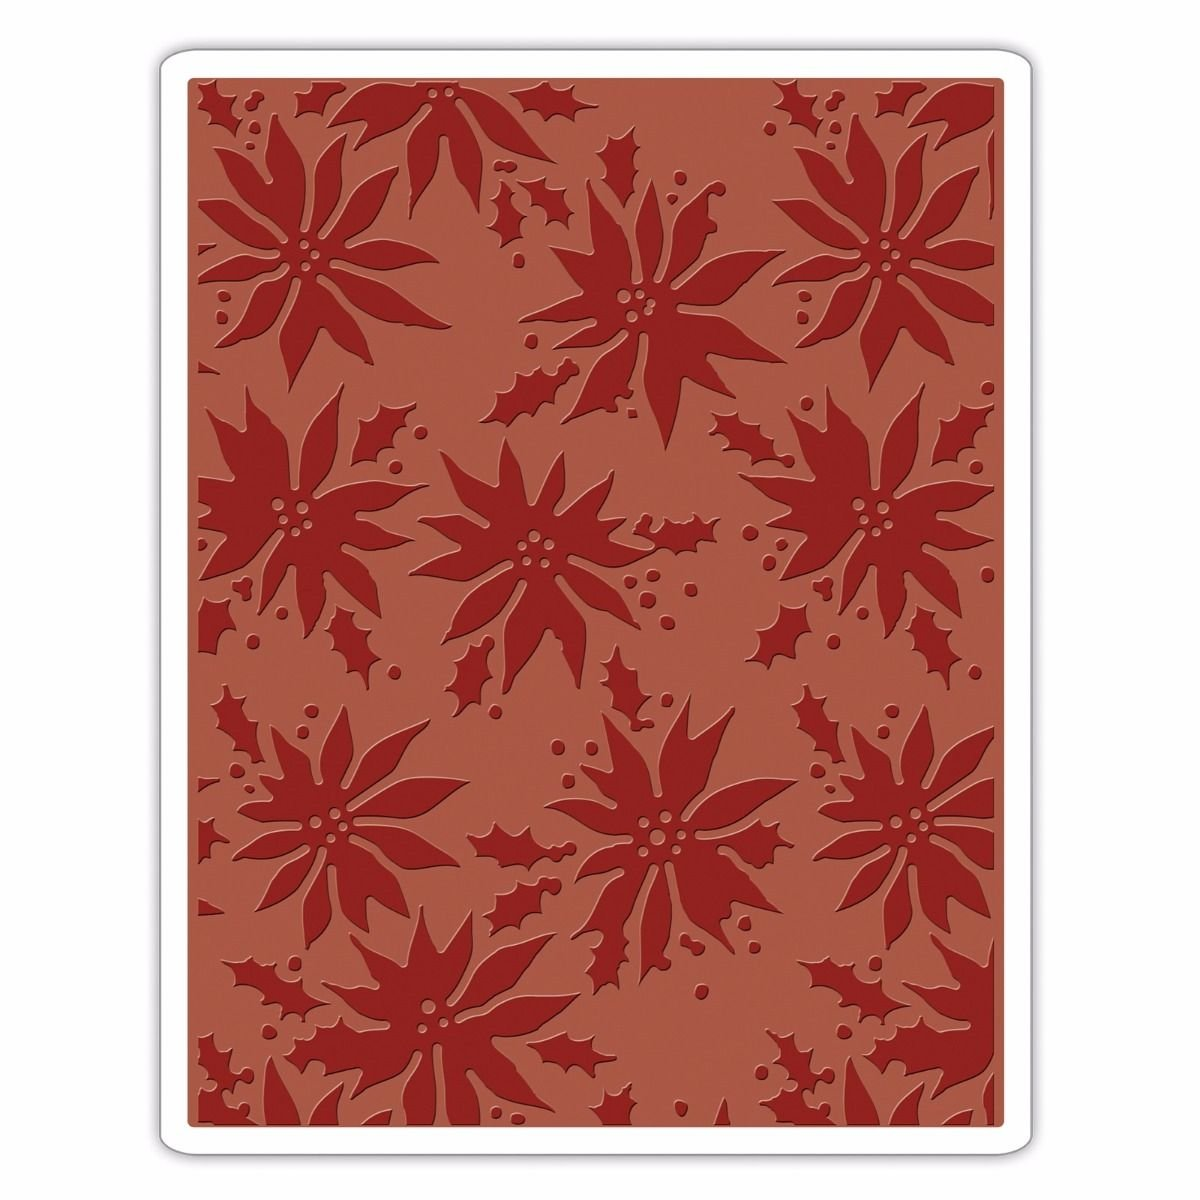 Sizzix 662433 Texture Fades Embossing Folder, Poinsettias by Tim Holtz, Multi Ellison